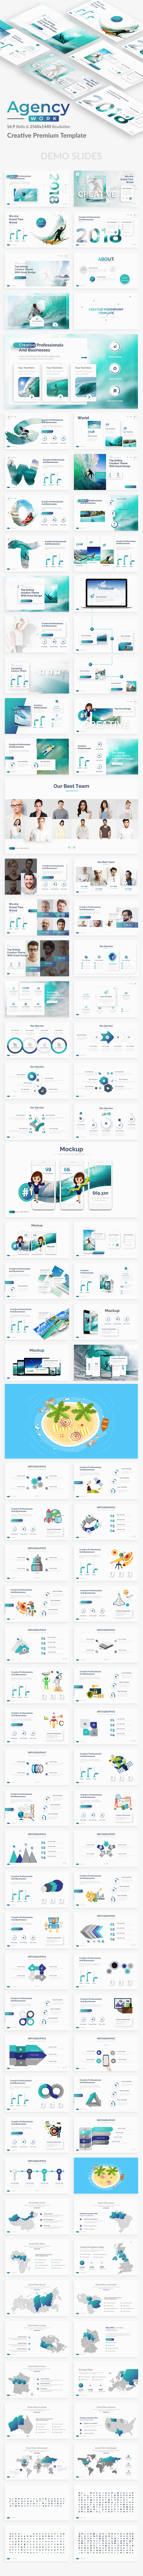 Agency Work Design Keynote Template - Creative Keynote Templates